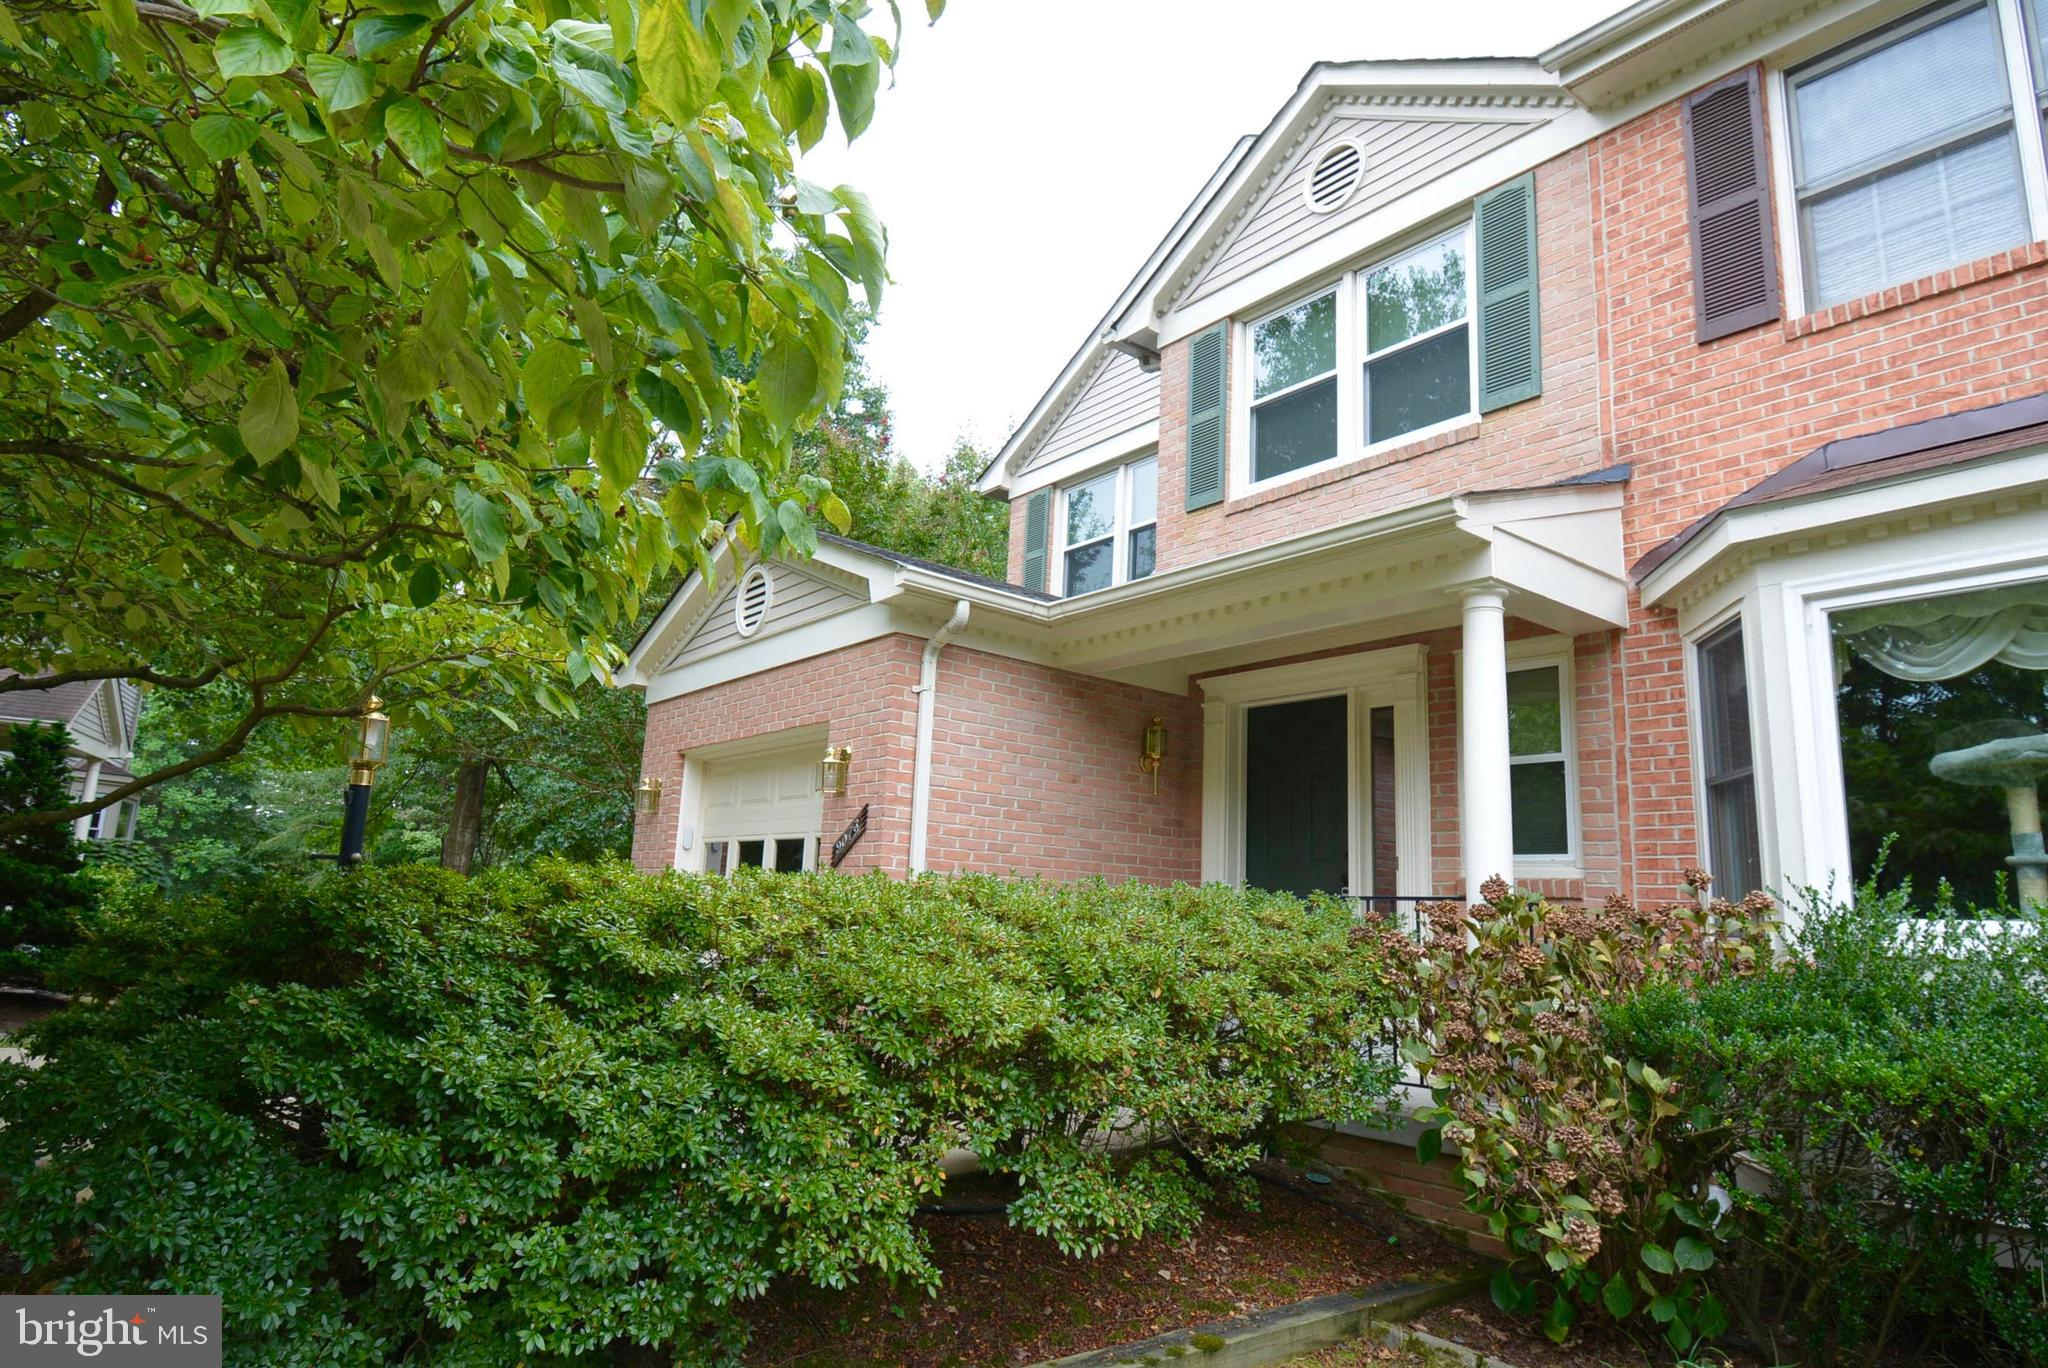 End unit garage townhome by Lake Mercer...View of Lake Mercer when leaves are not on the trees...Backs to trees...Bright, light filled townhome with upgrades...Beautiful hardwoods on most of main and upper level..Remodelled gourmet kit w/SS, granite, frameless cherry cabinets..Living room has SGD to deck..Large MBR with extra windows, box window, walk in closet and SGD to mini balcony...Luxury master bath with soaking tub, skylight and double sinks...Lower level has large rec room w/gas fireplace and SGD to patio...Roof (1999), Hot water water (2010)...Furnace (2010), A/C 92018), Windows (2014), Kitchen (2012)